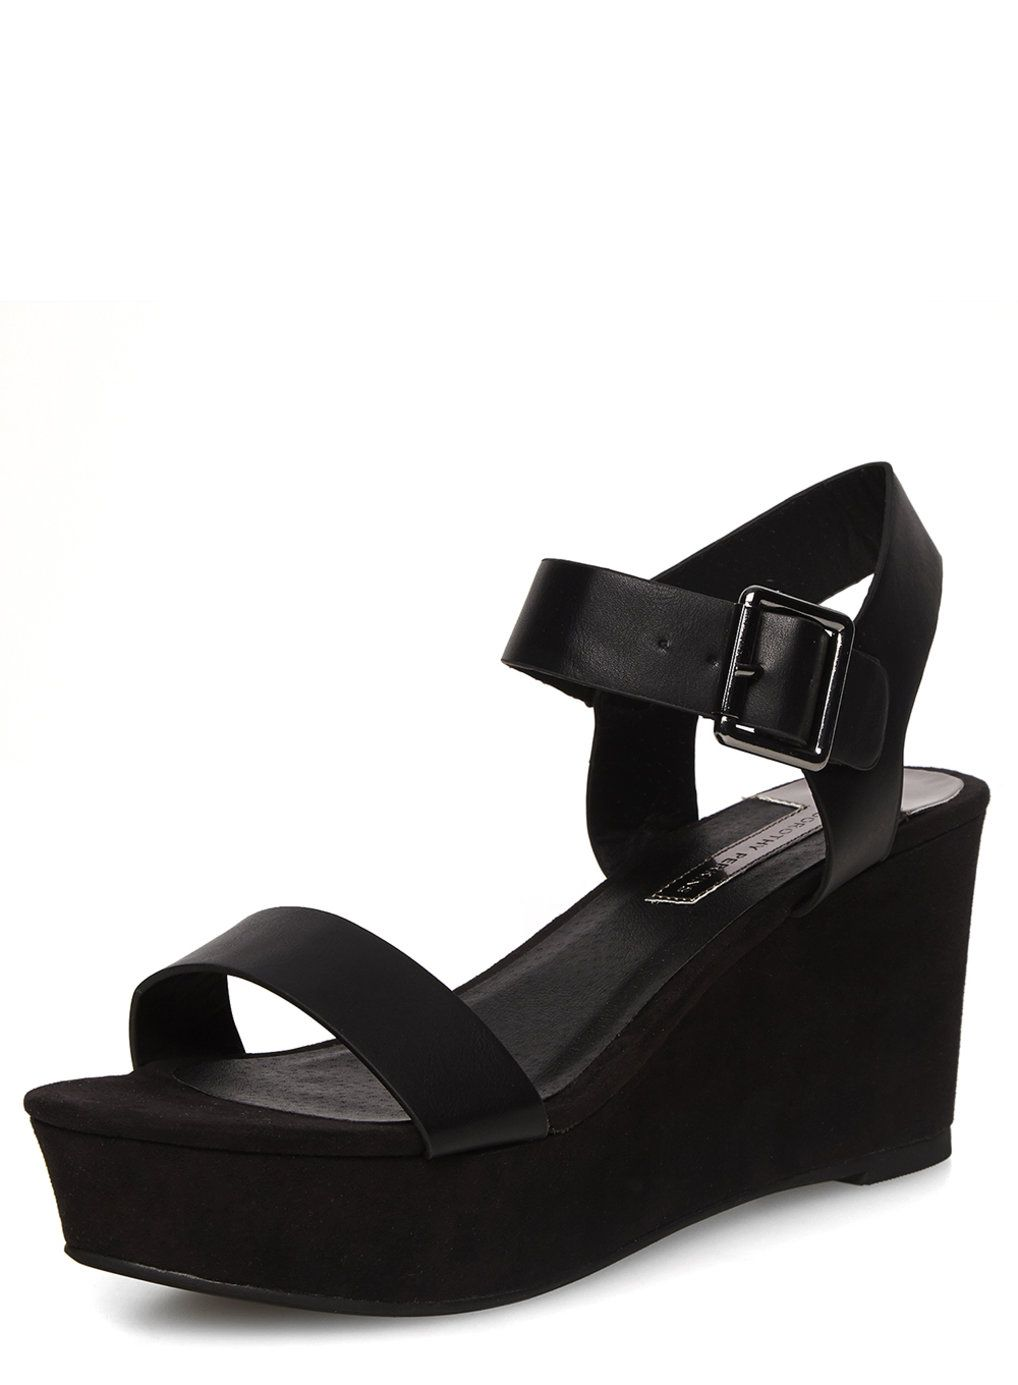 2b59969984f Black flatform wedge sandals